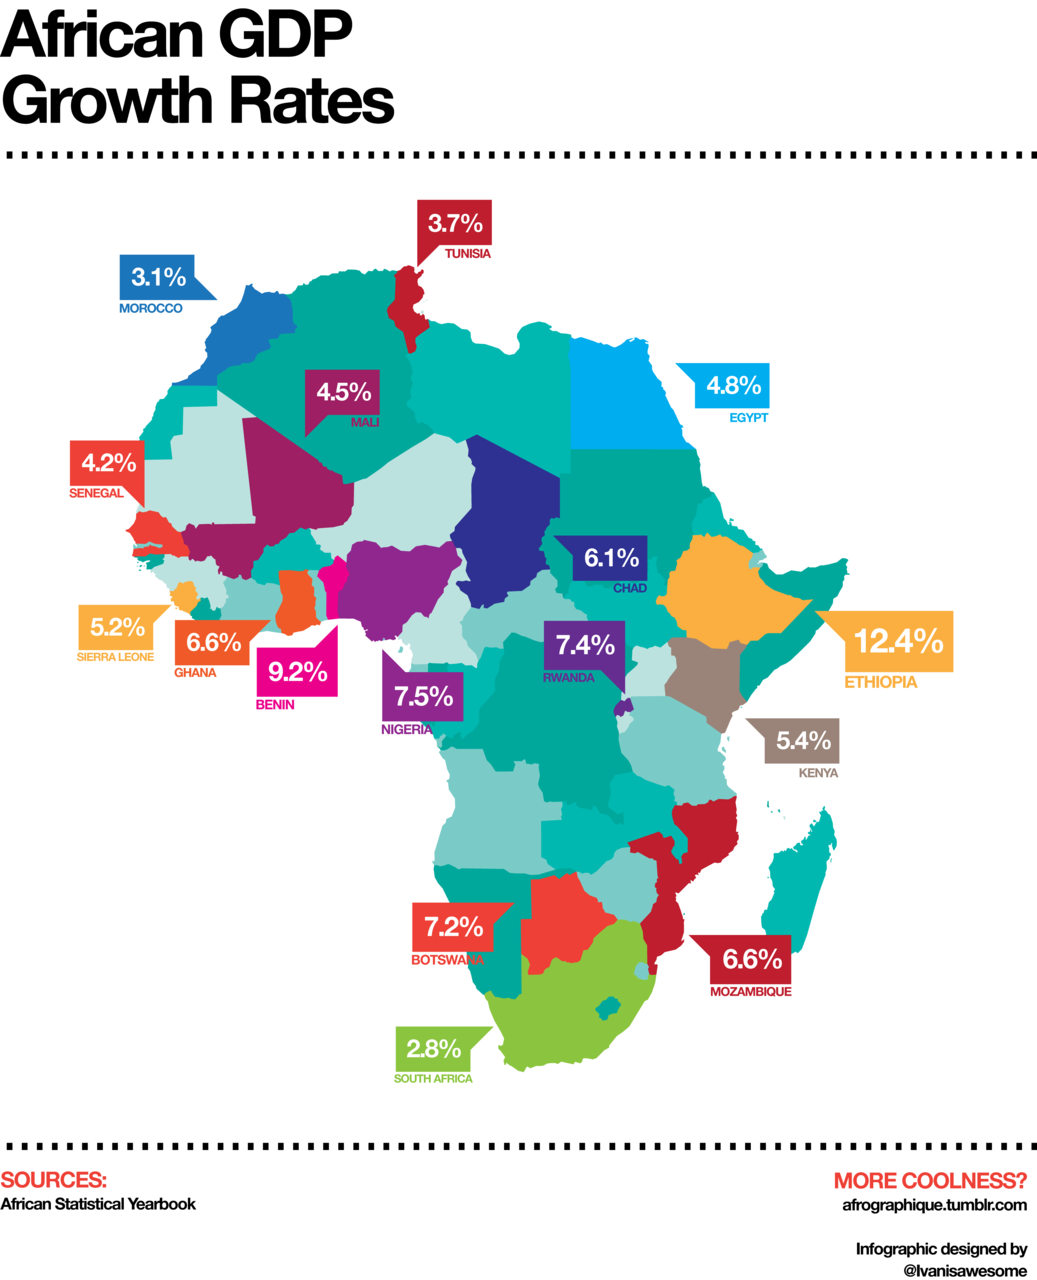 A look at African GDP growth rates. It's interesting to